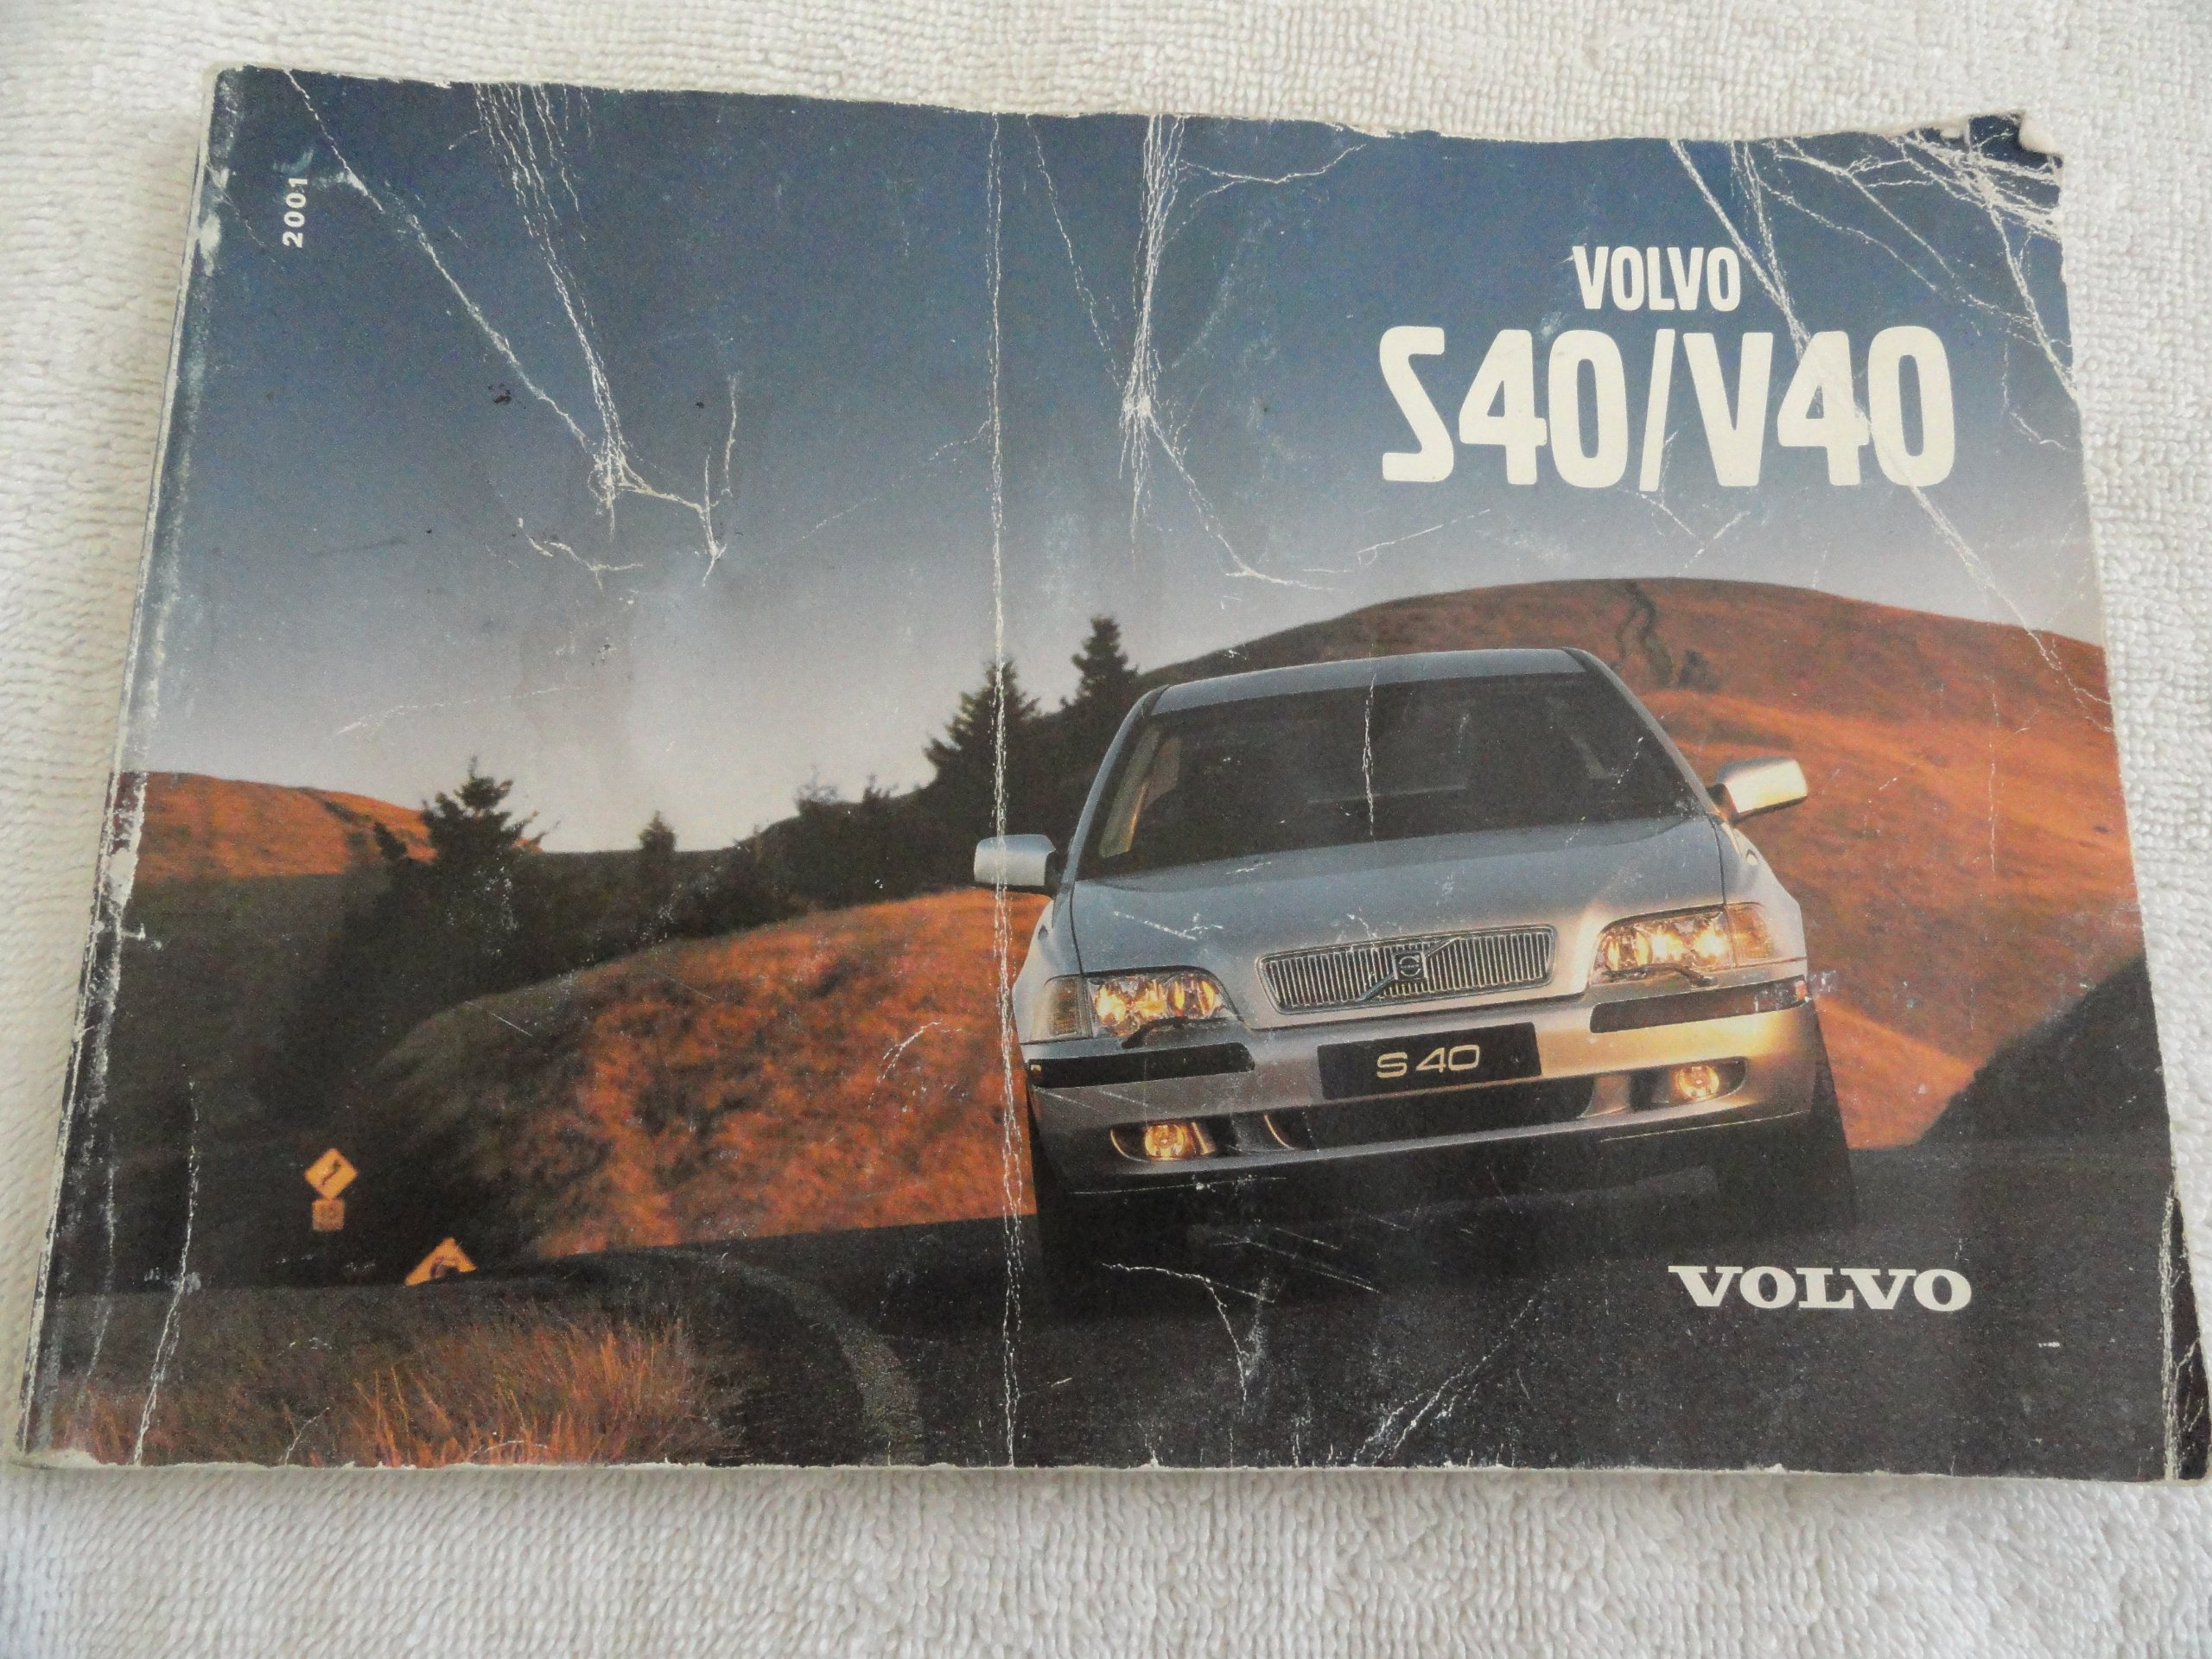 2001 volvo s40 v40 owners manual volvo amazon com books rh amazon com Volvo S80 2004 Volvo S40